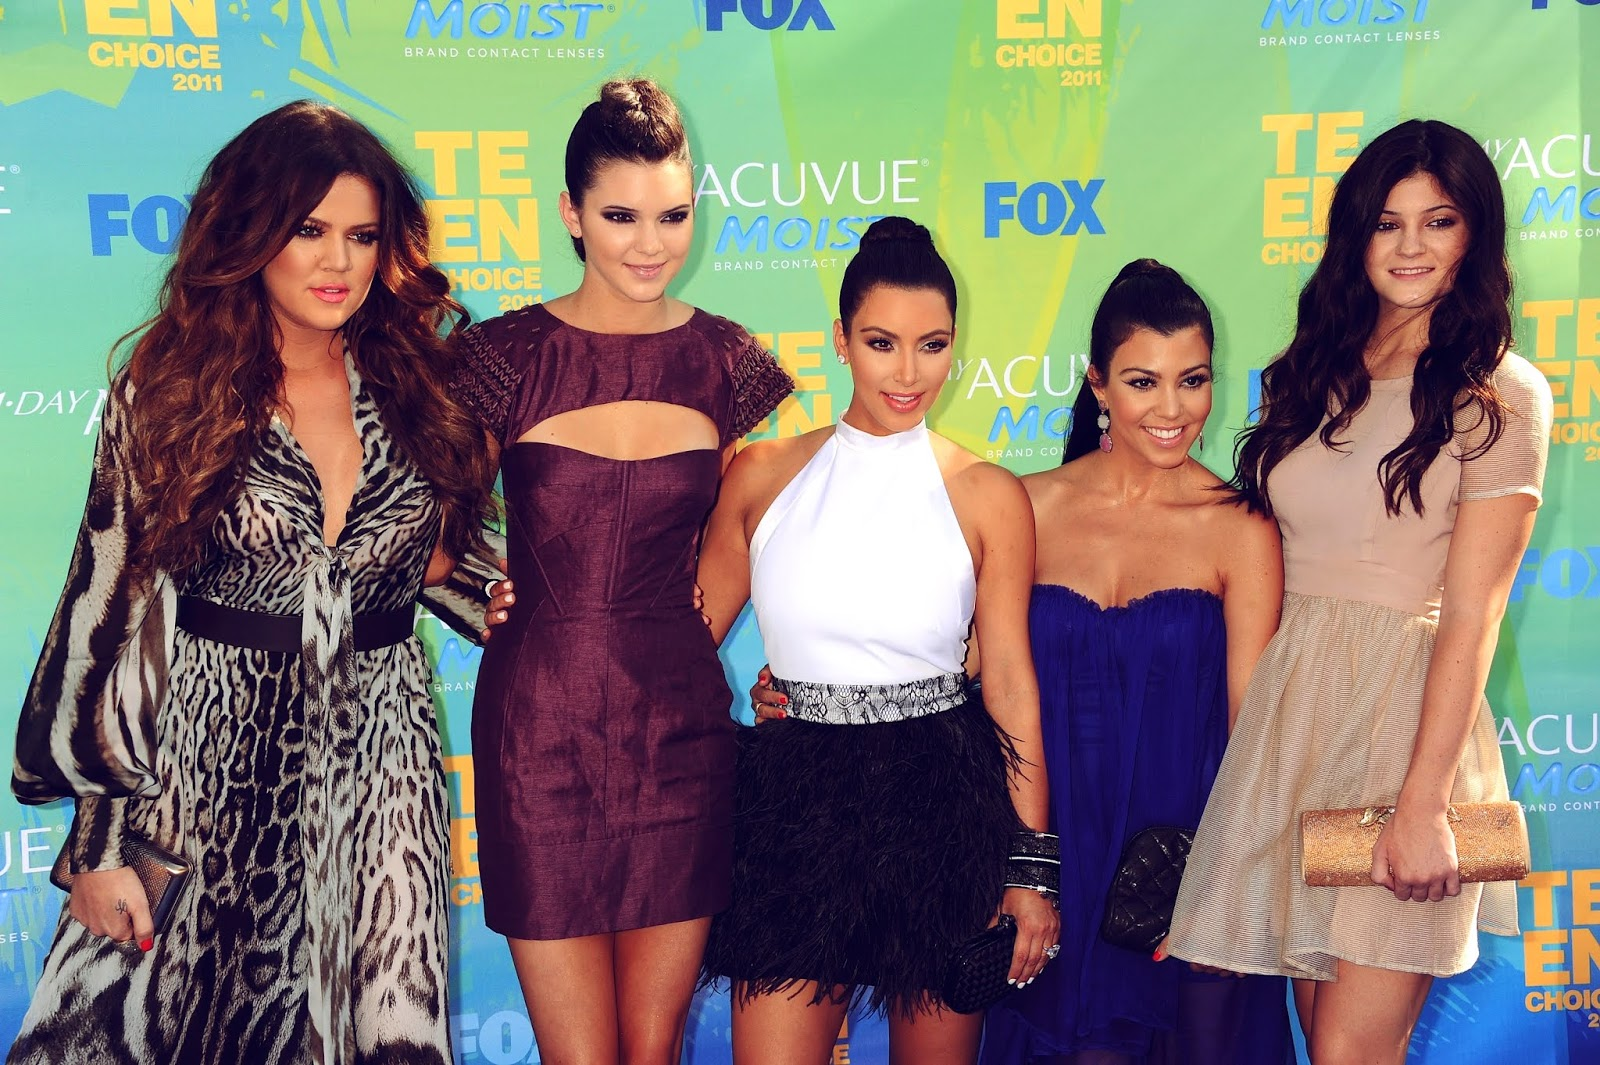 46 - Teen Choice Awards in August 11, 2011